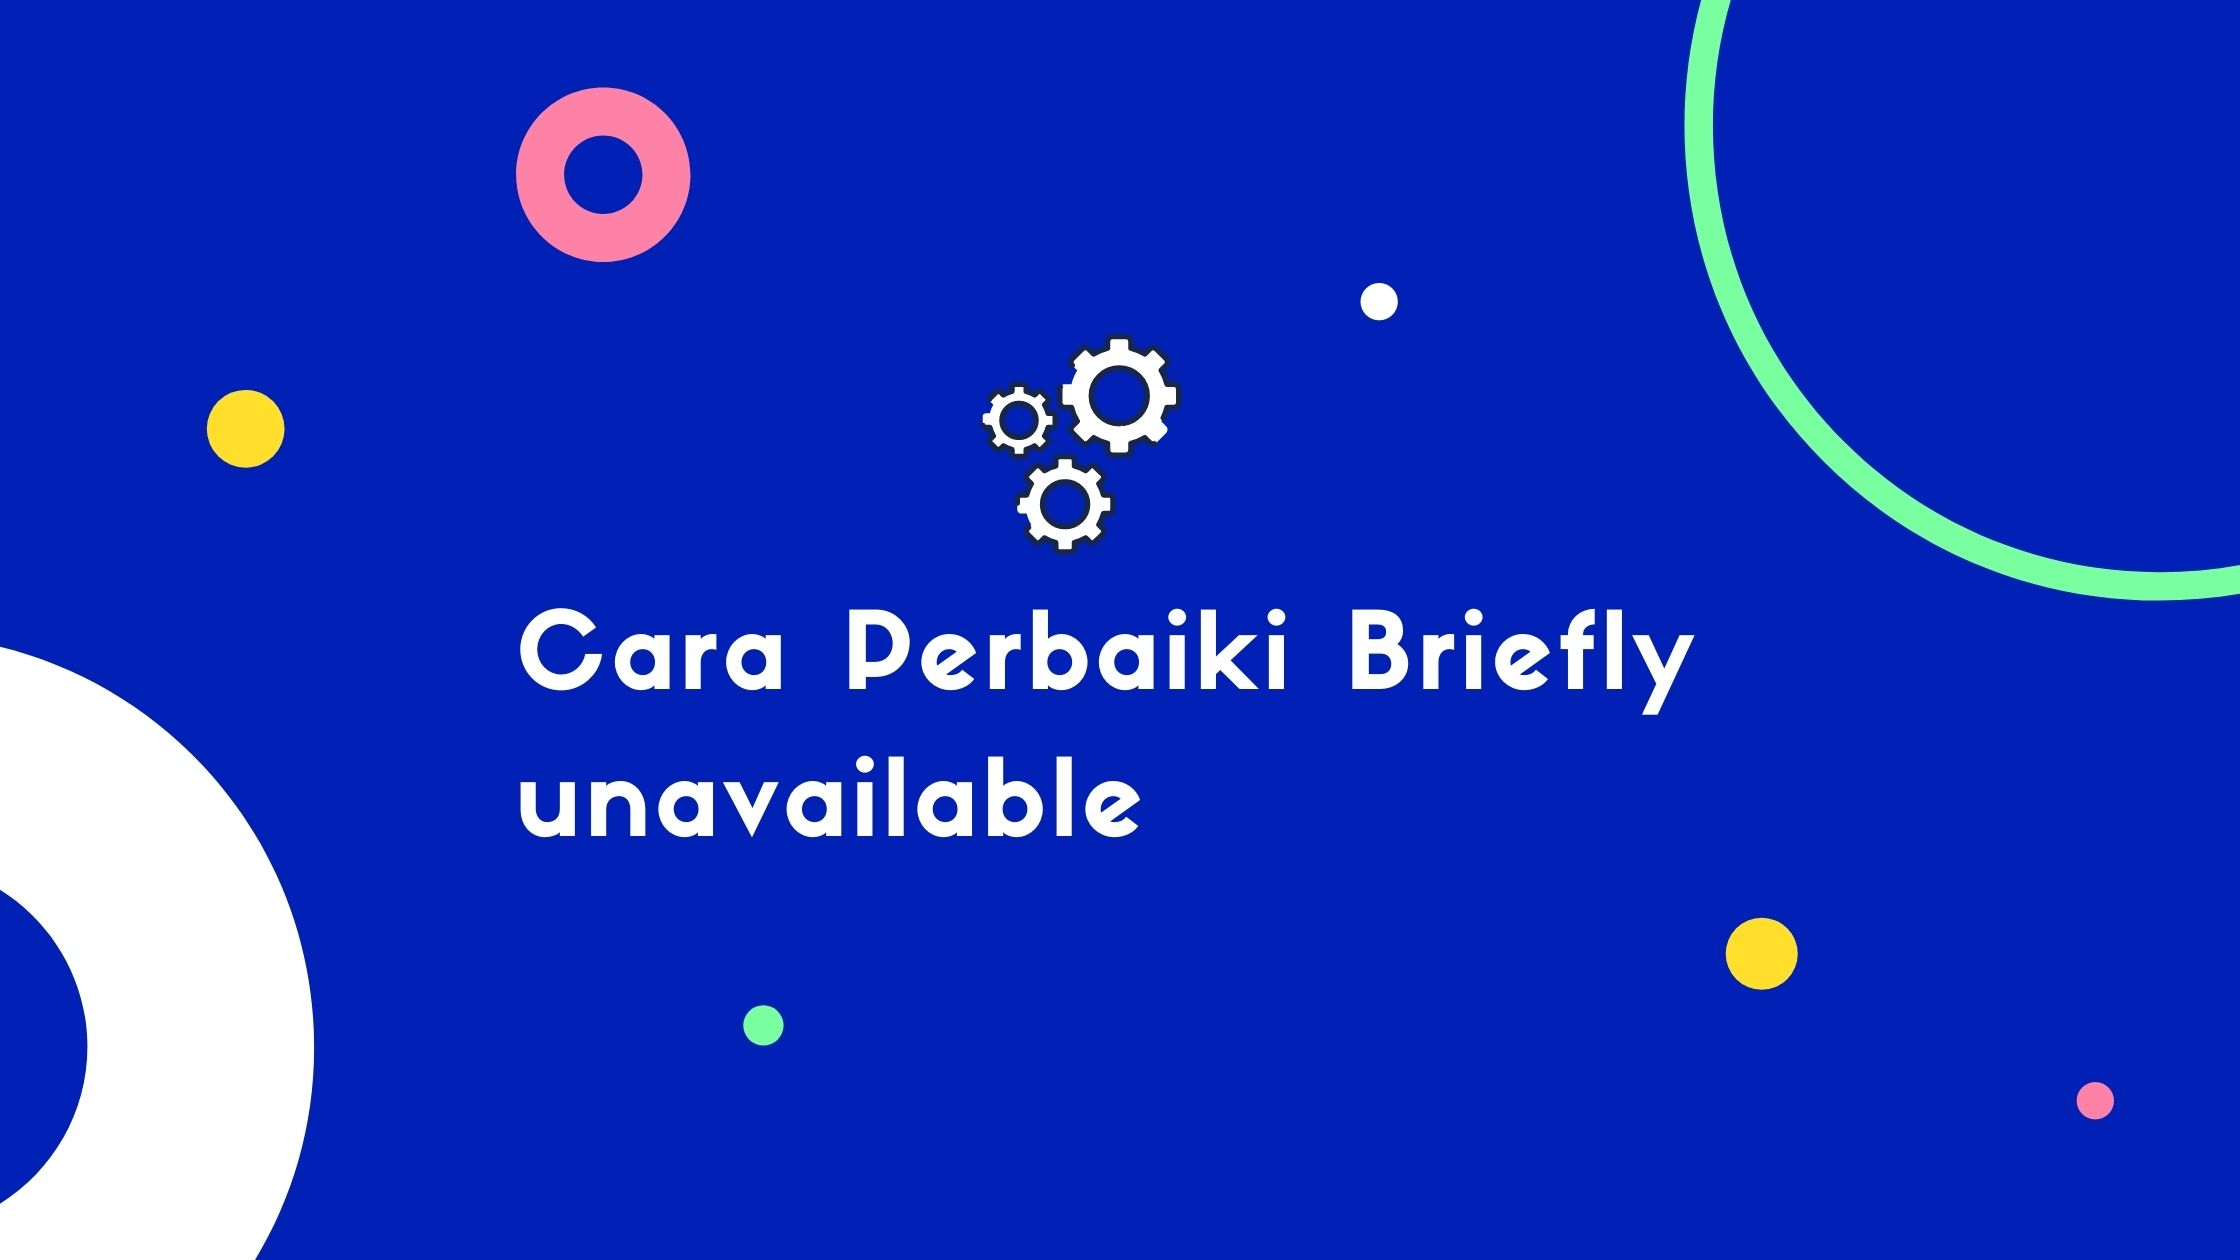 Cara Perbaiki Briefly unavailable for scheduled maintenance. Check back in a minute di WordPress